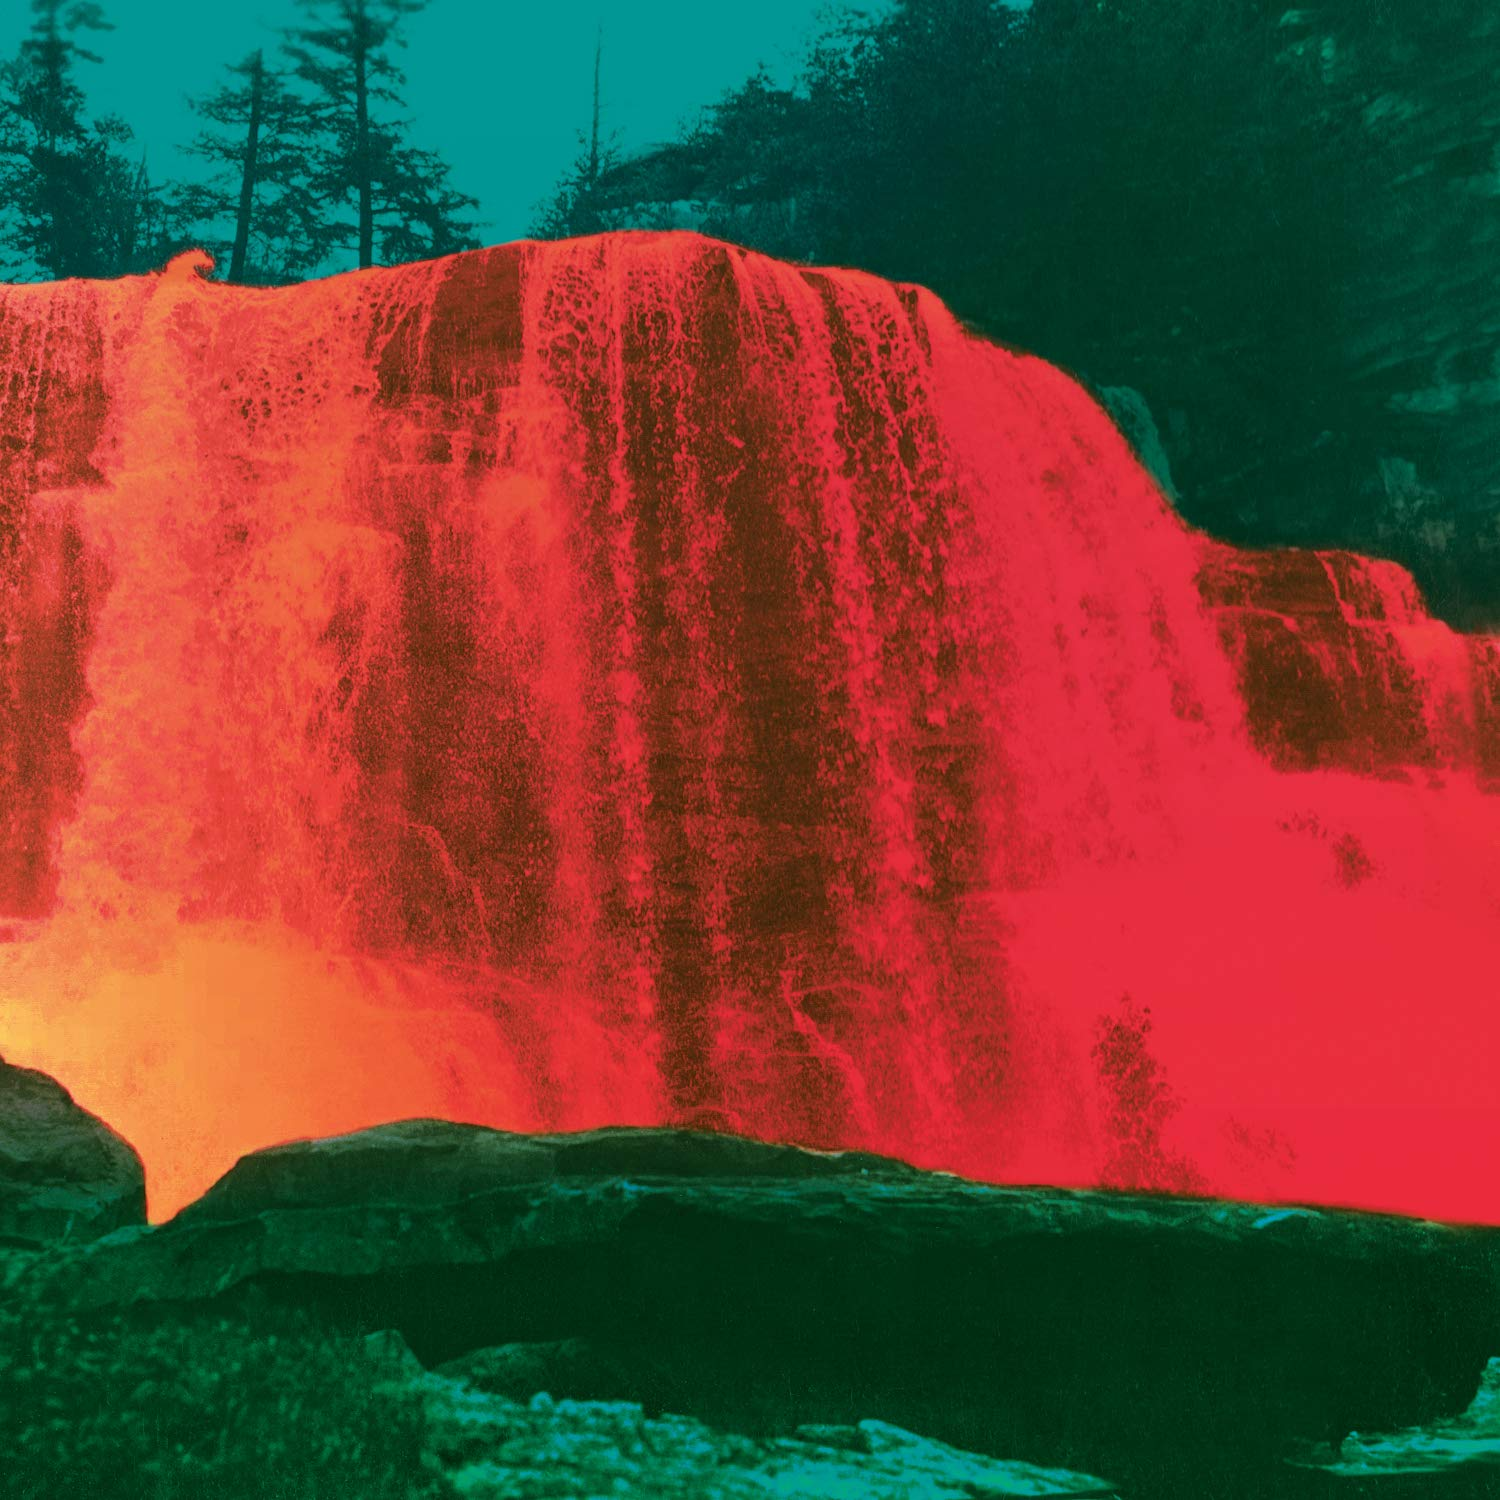 My Morning Jacket: The Waterfall II [Album Review]